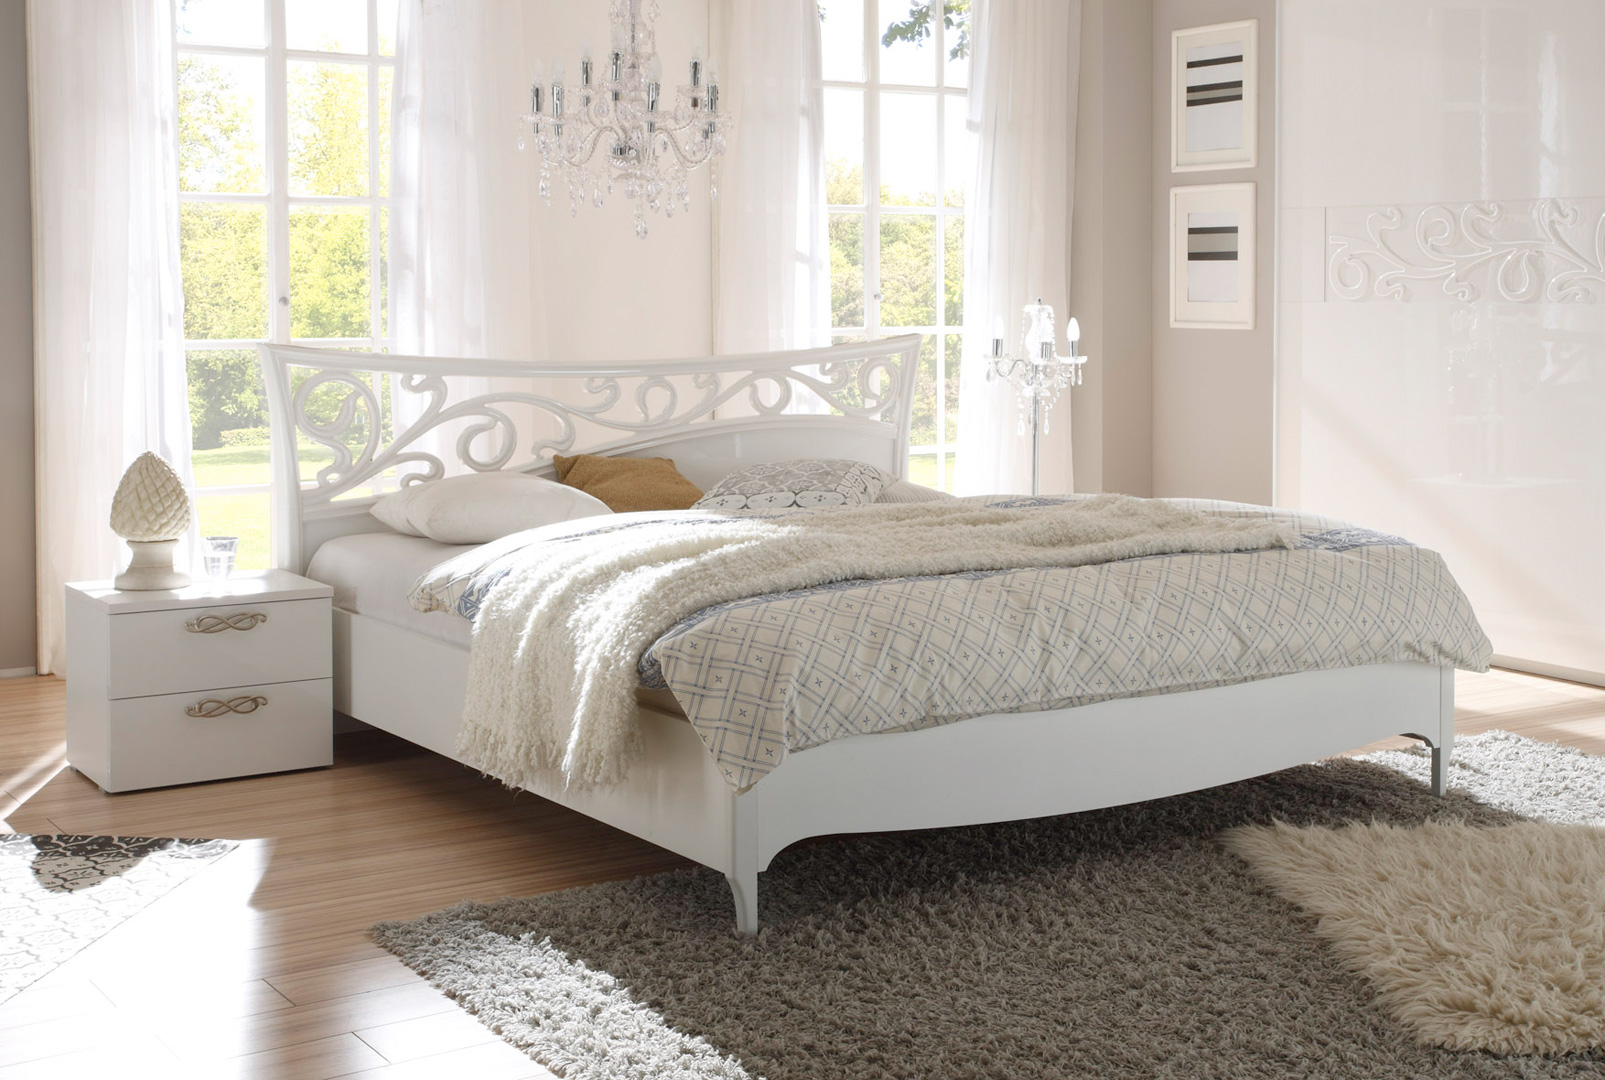 lit adulte design laqu blanc estelle matelpro. Black Bedroom Furniture Sets. Home Design Ideas